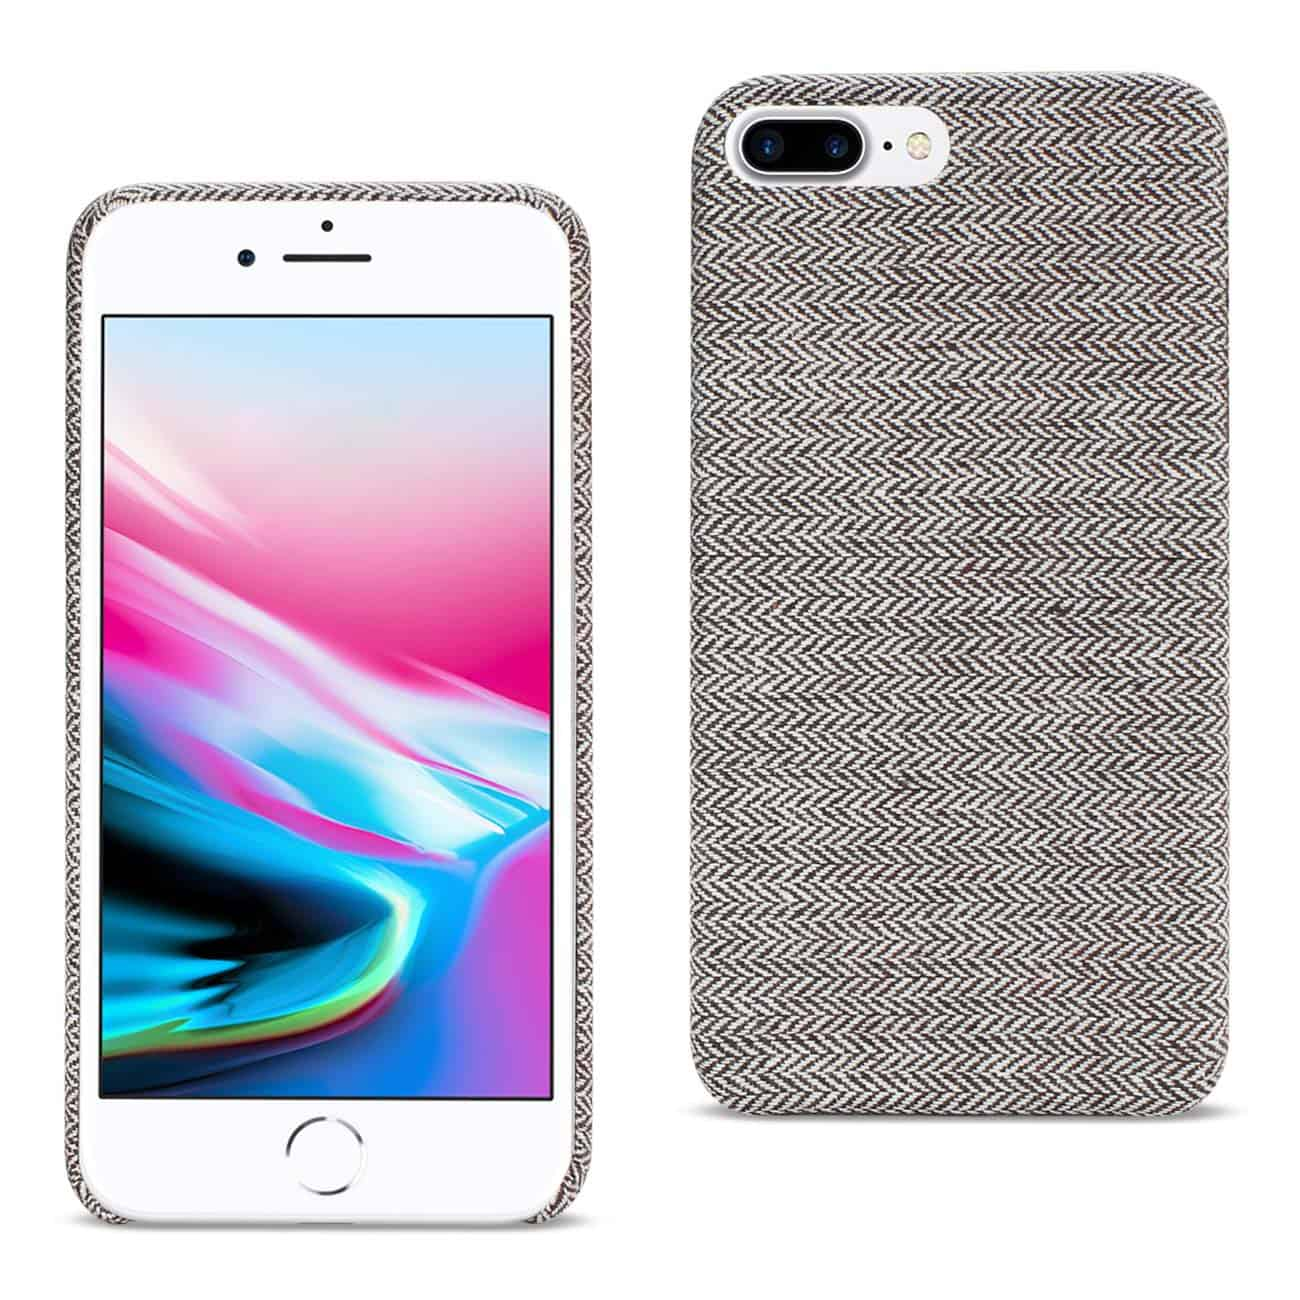 IPHONE 8 PLUS HERRINGBONE FABRIC IN DARK GRAY